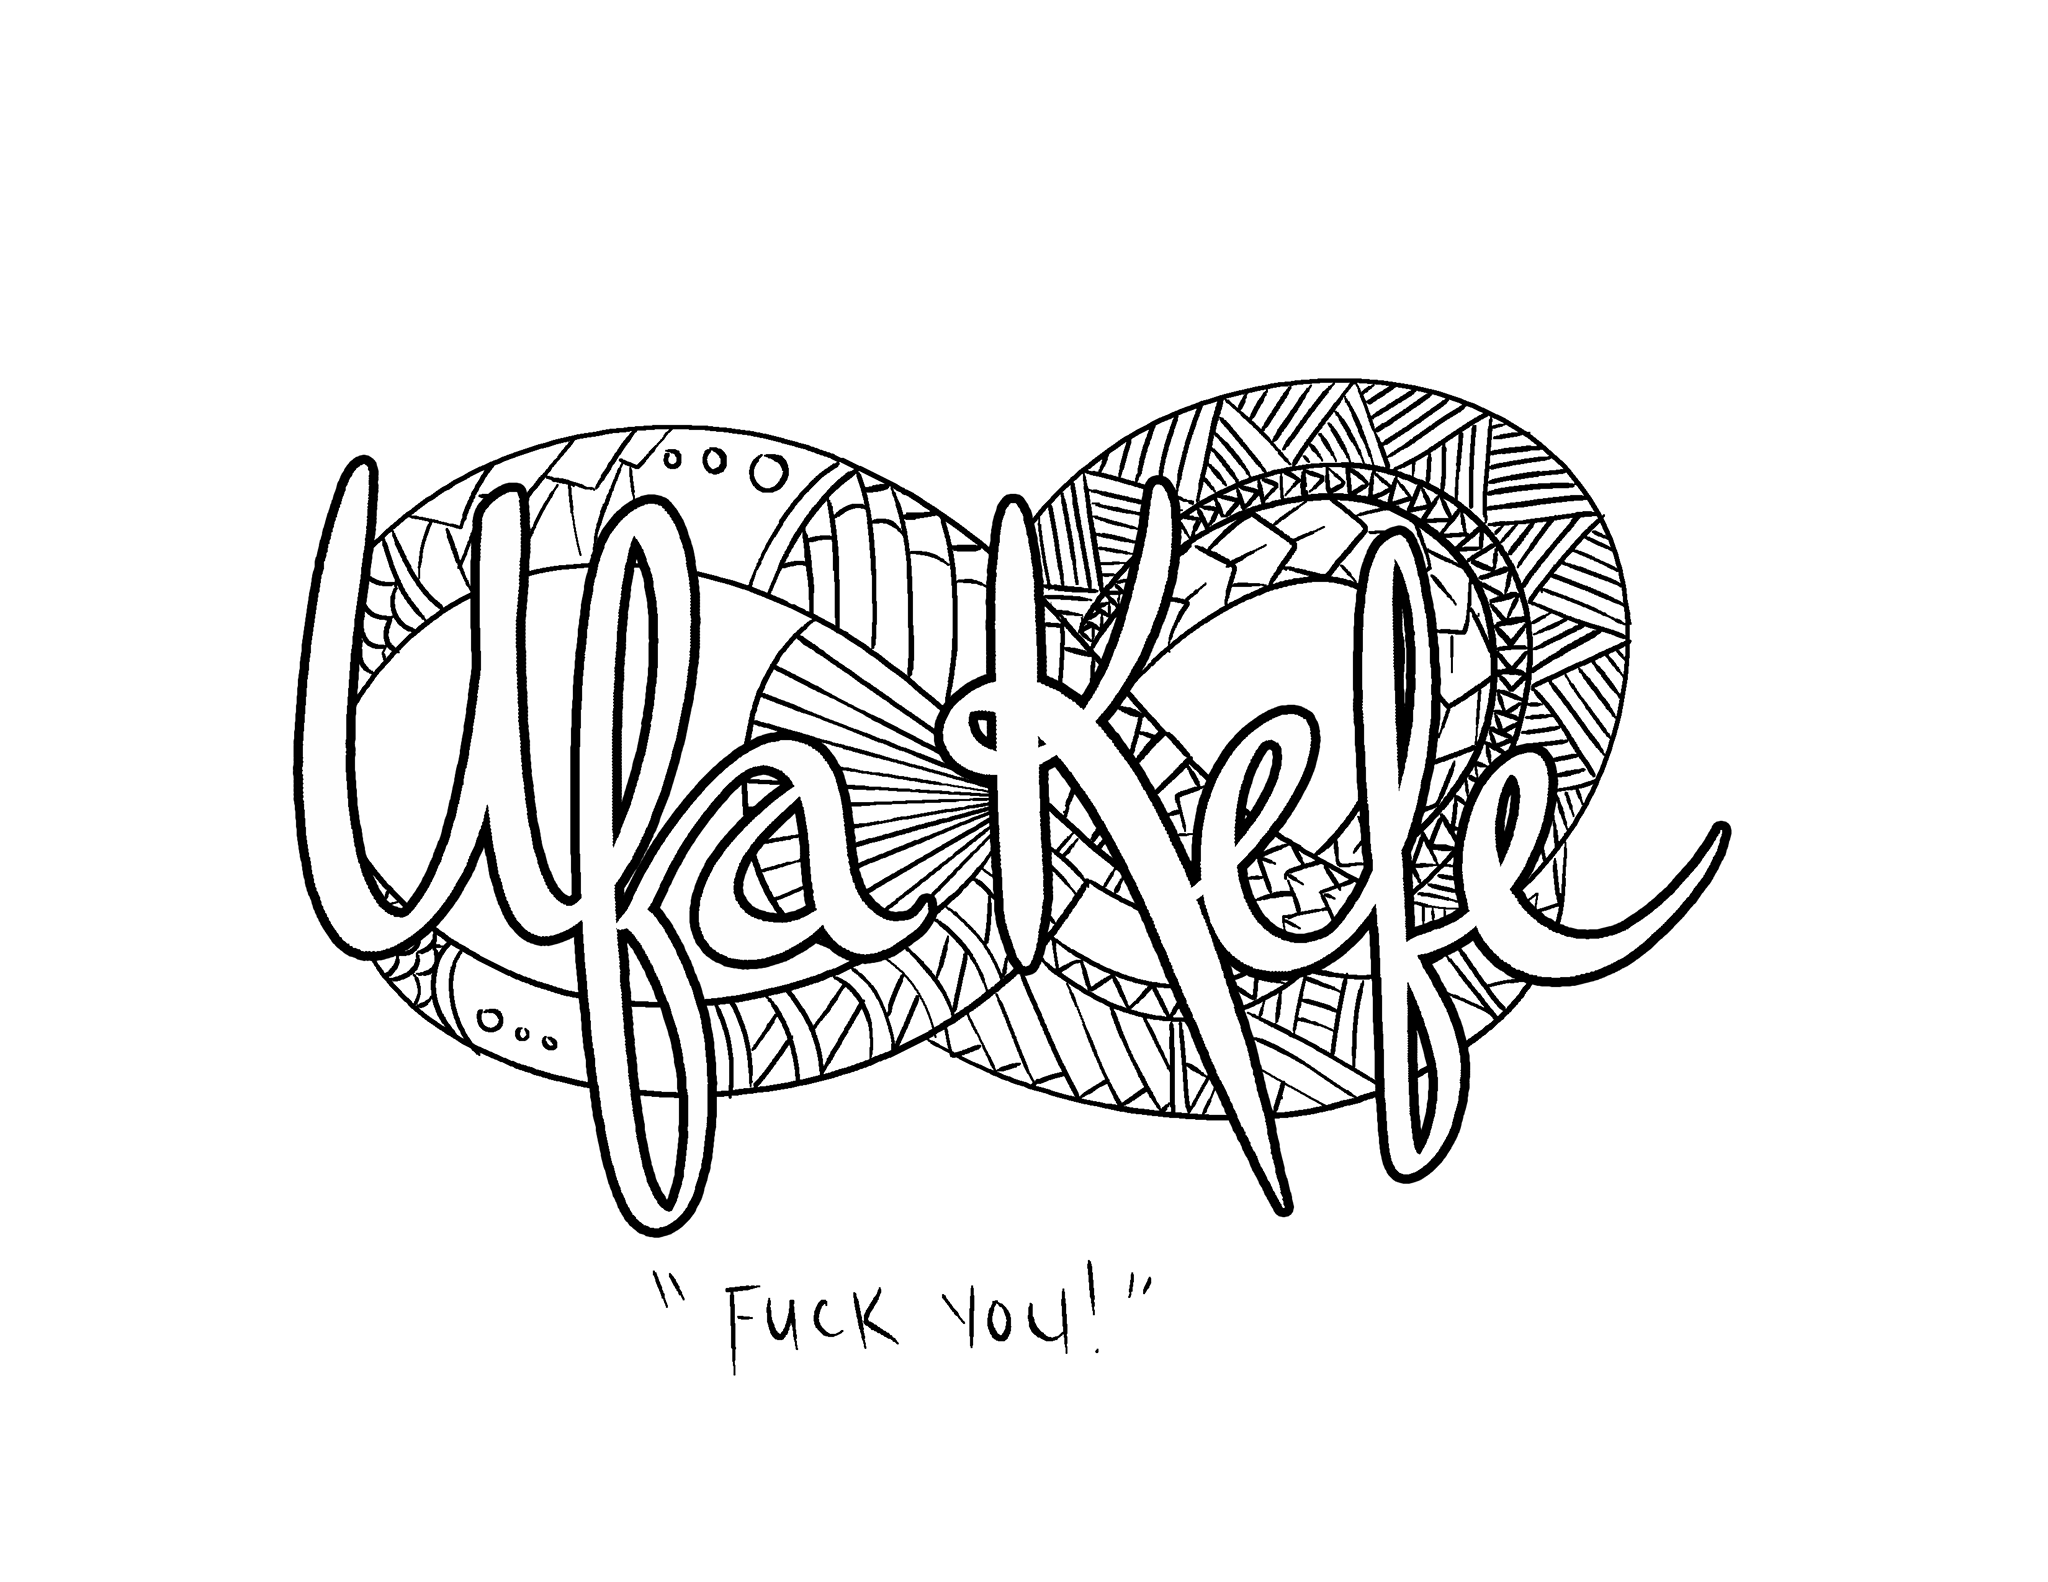 Ufa Kefe - Fuck You - Coloring Page by Colorful Language © 2015 ...